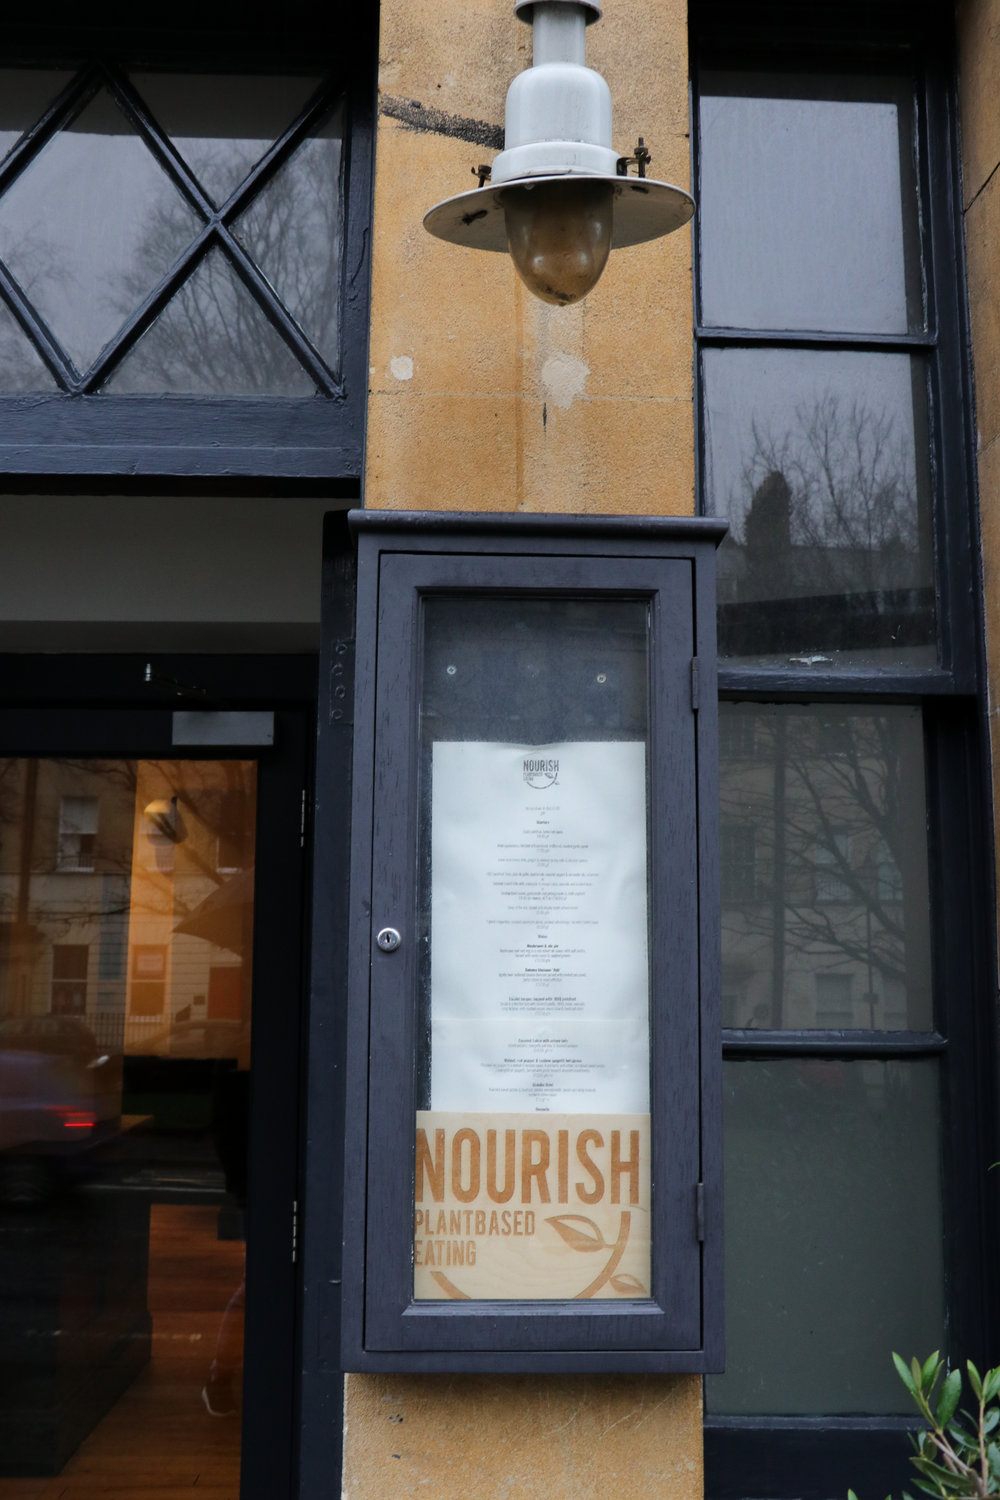 Nourish Vegan Vegetarian Restaurant Bath.jpg